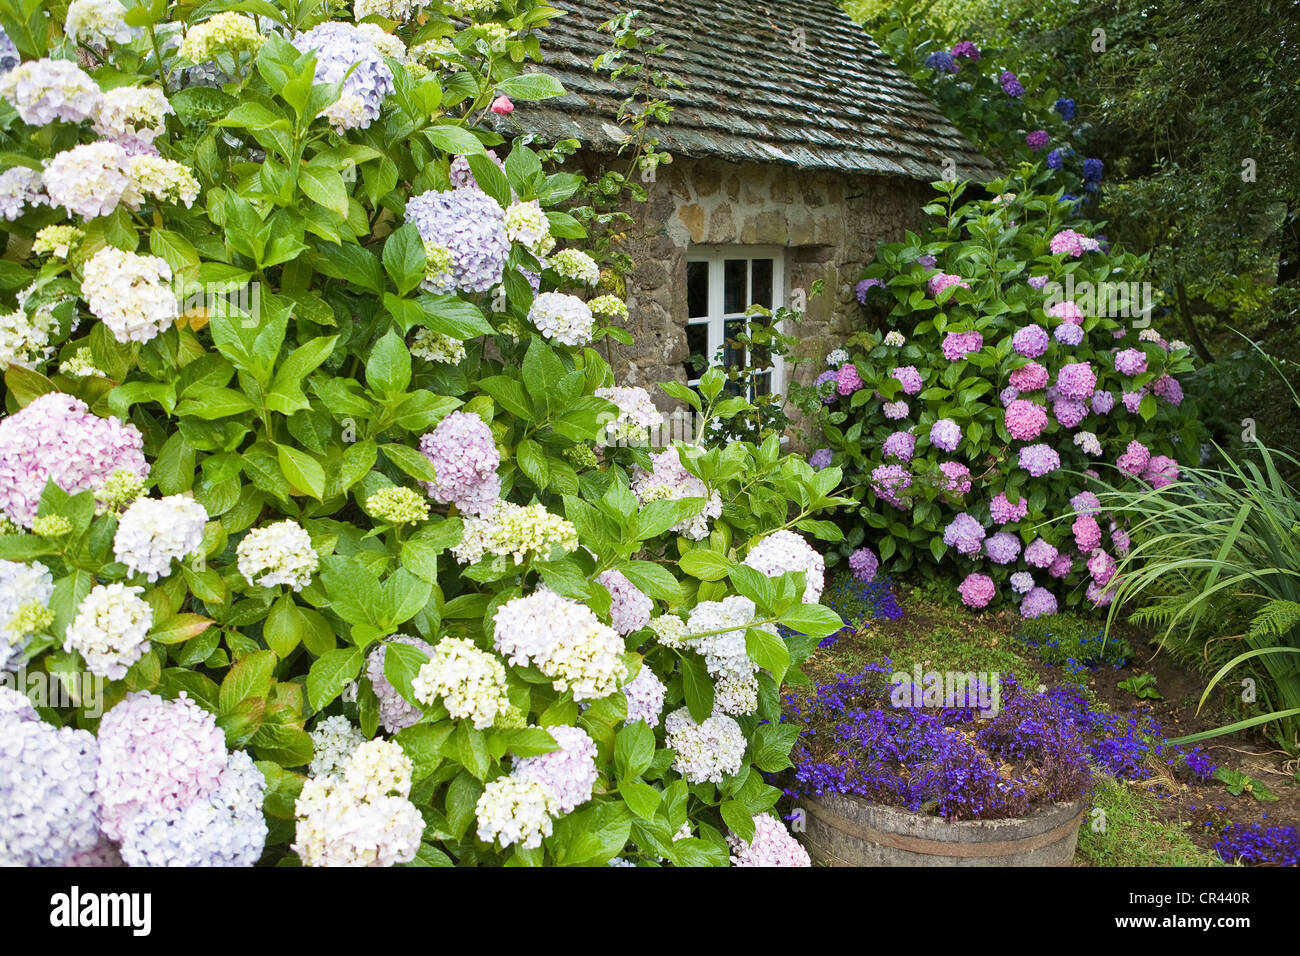 France, Manche, Cotentin, La Hague, Omonville la Petite, hydrangeas and stone house - Stock Image